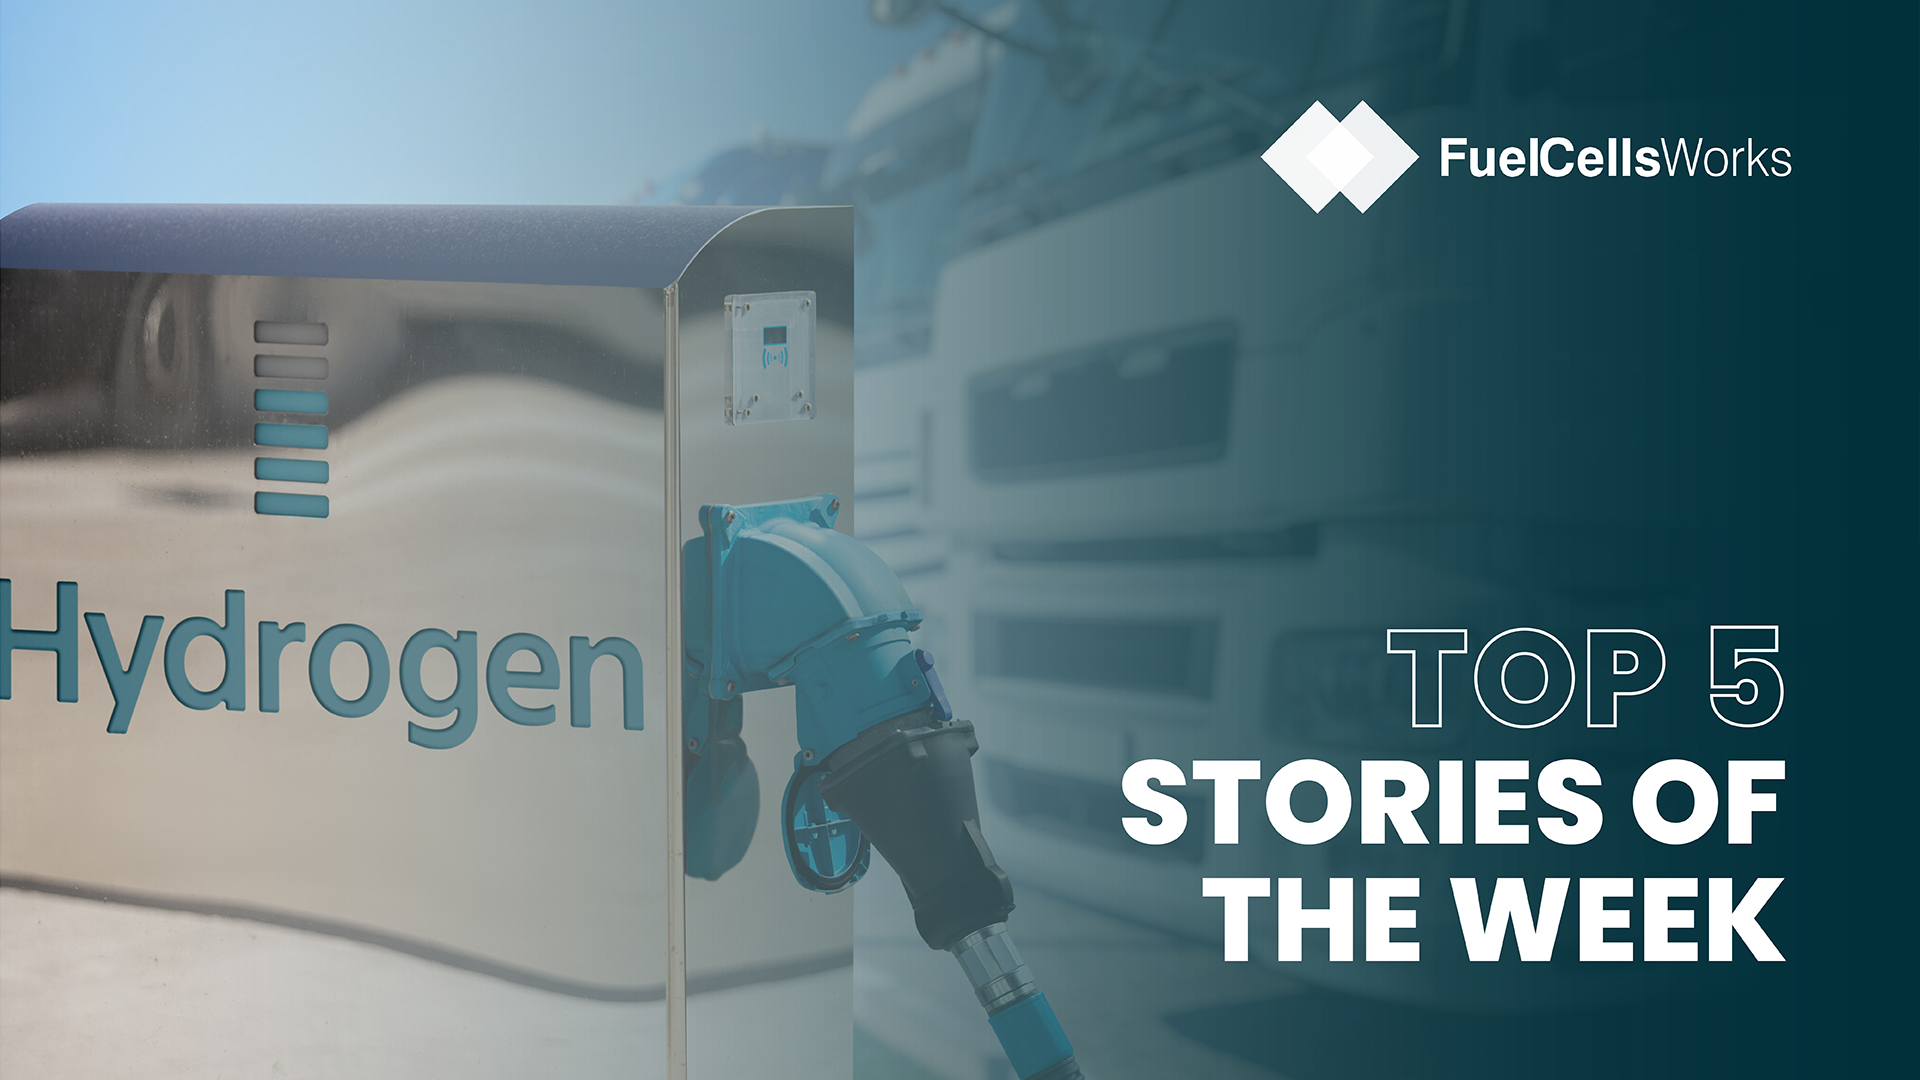 Fuel Cells Works, Top 5 Fuel Cell & Hydrogen Stories